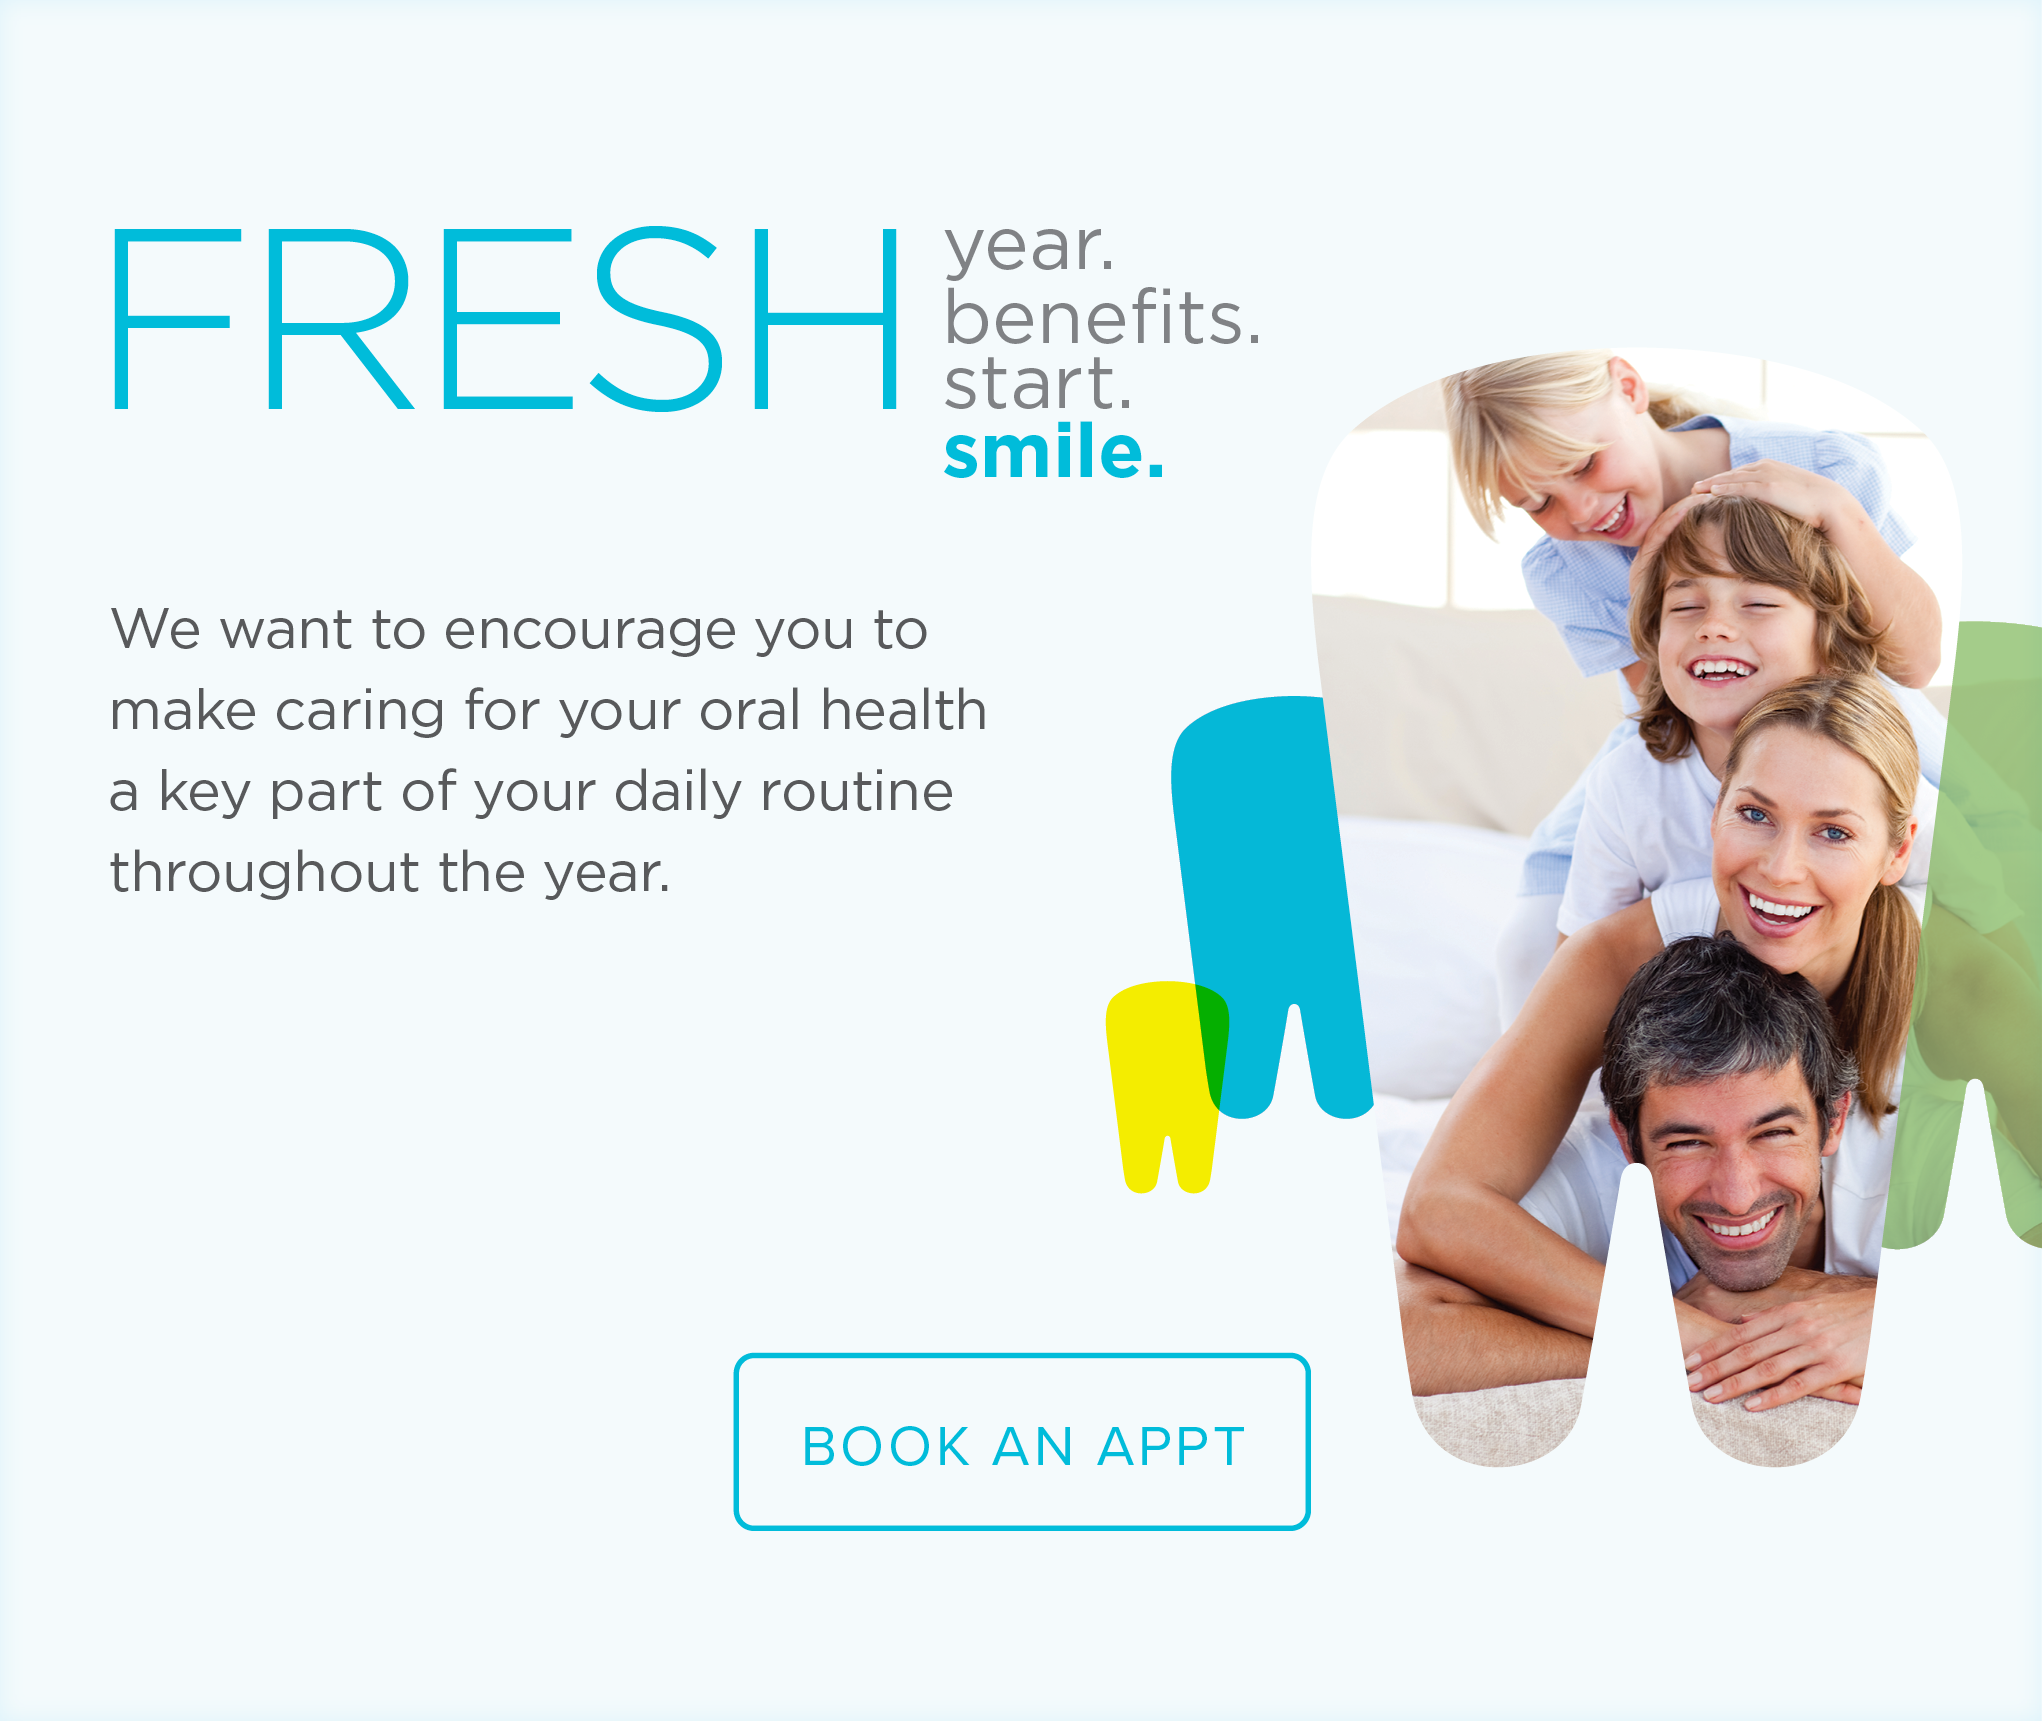 Briargrove Smiles Dentistry - Make the Most of Your Benefits